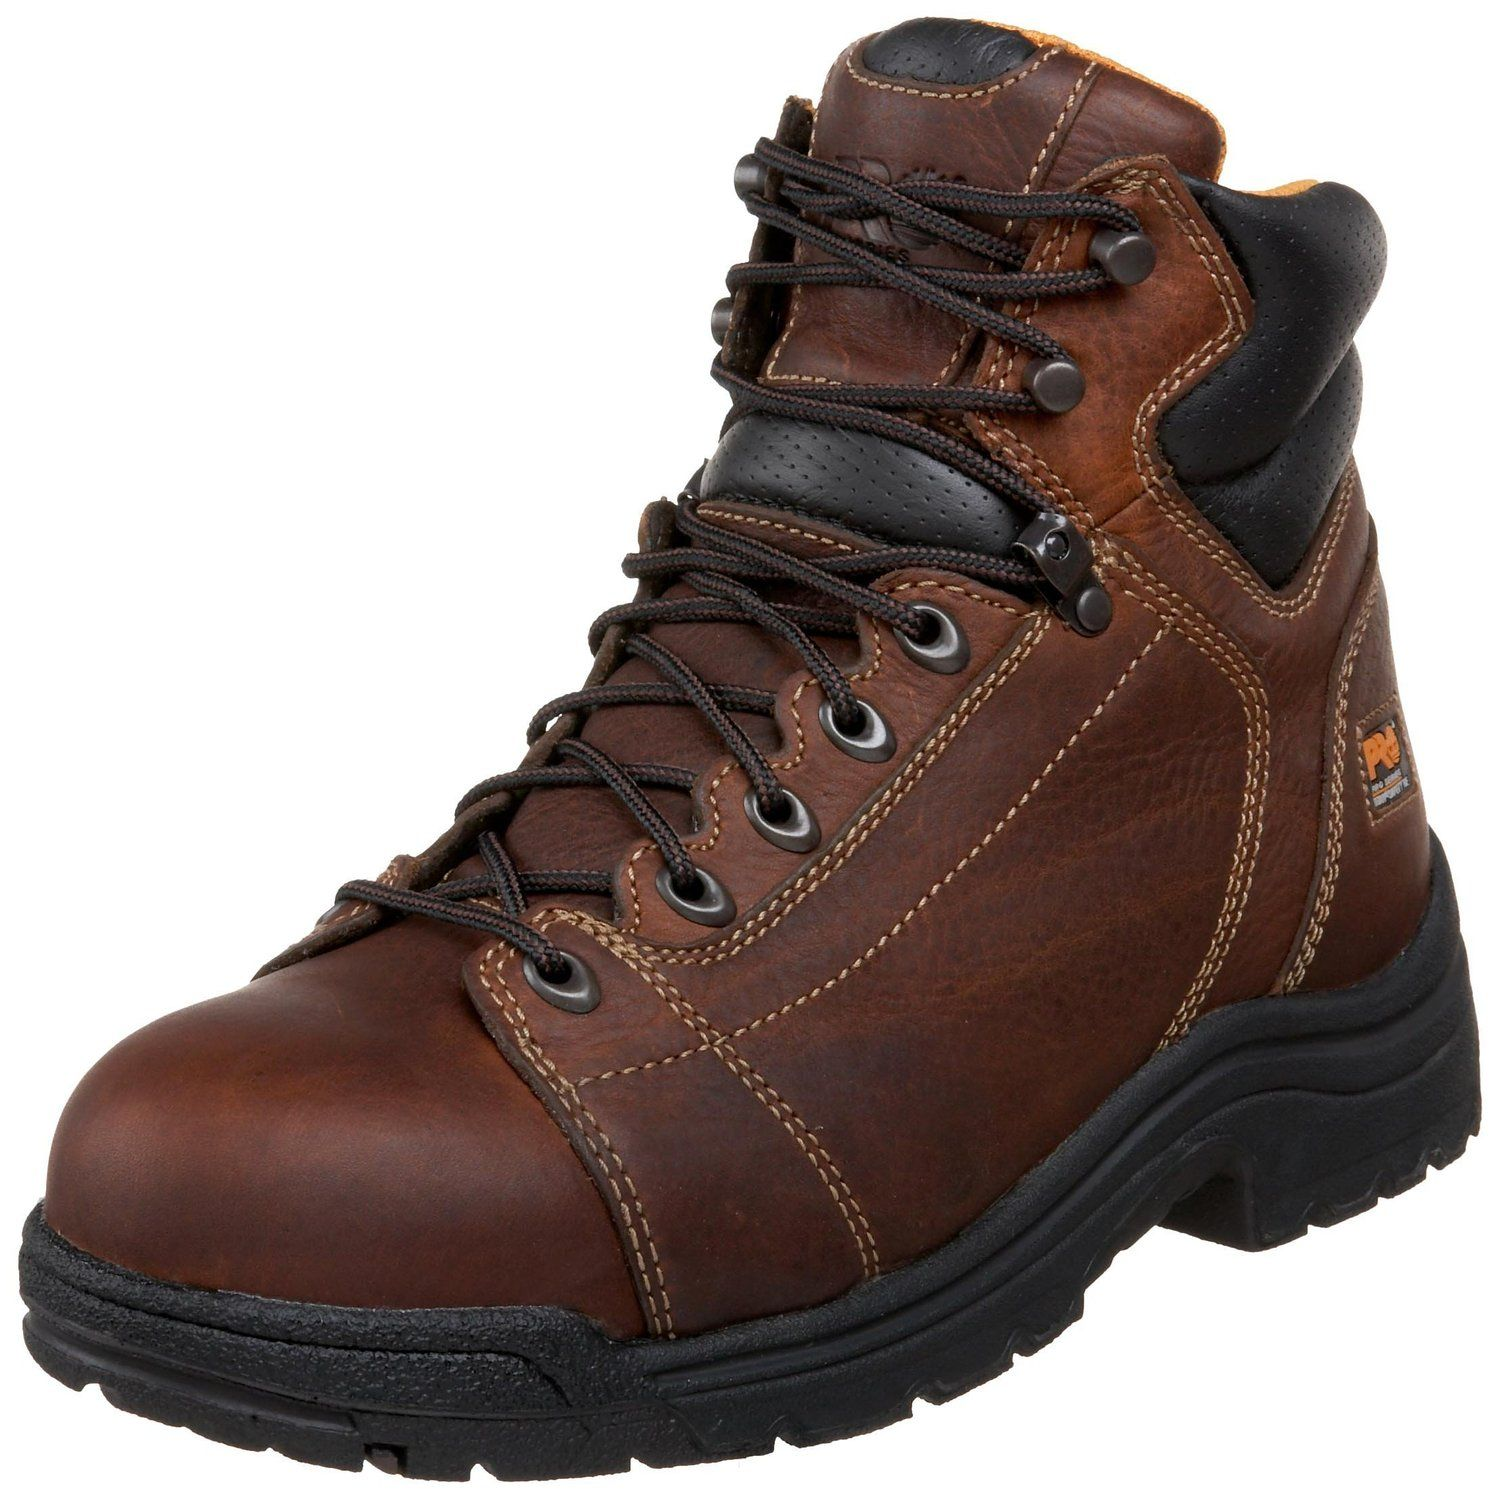 Timberland Pro Men's Titan 6' LacetoToe Safety Toe Boot